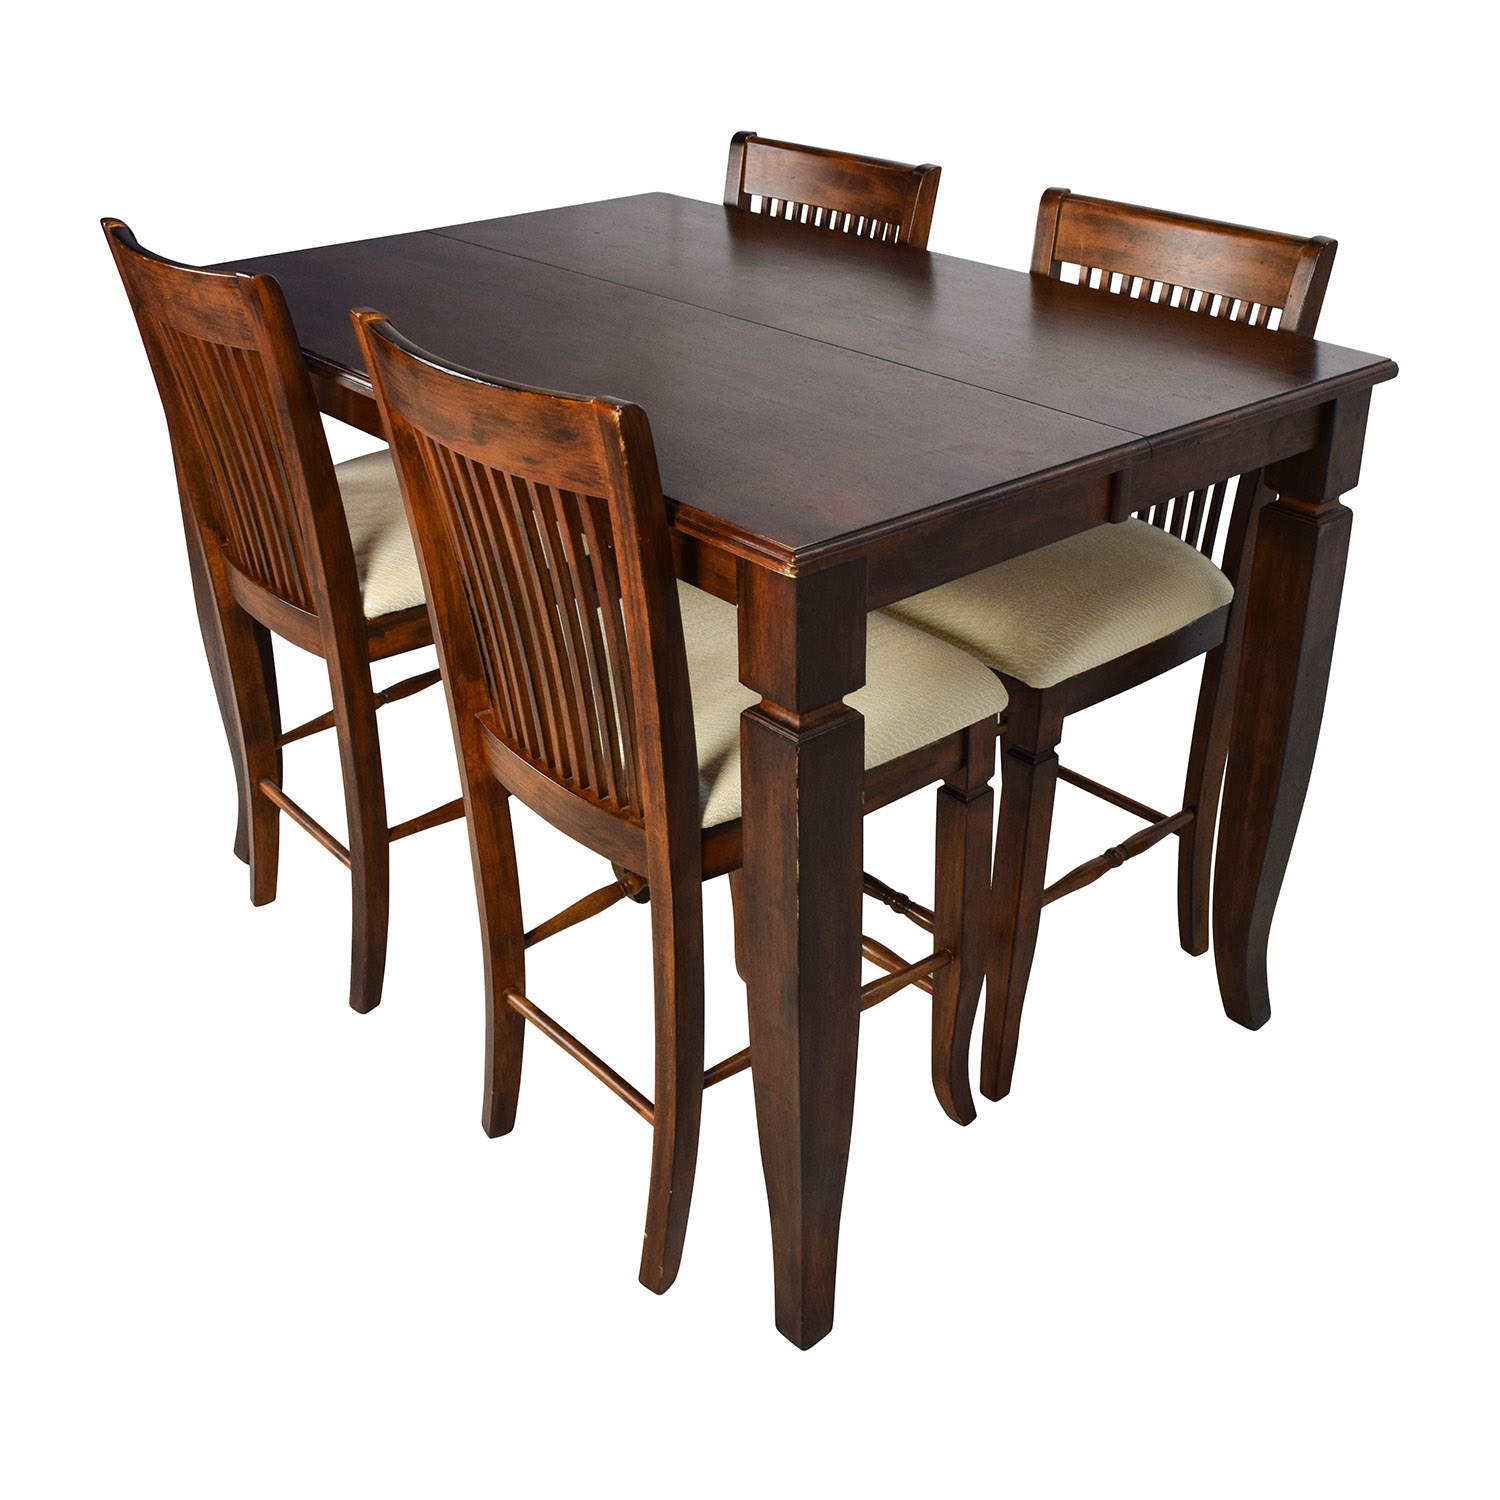 Extendable Dining Table Set Extendable Dining Table Set Vg988 Modern Dining Extendable Dining